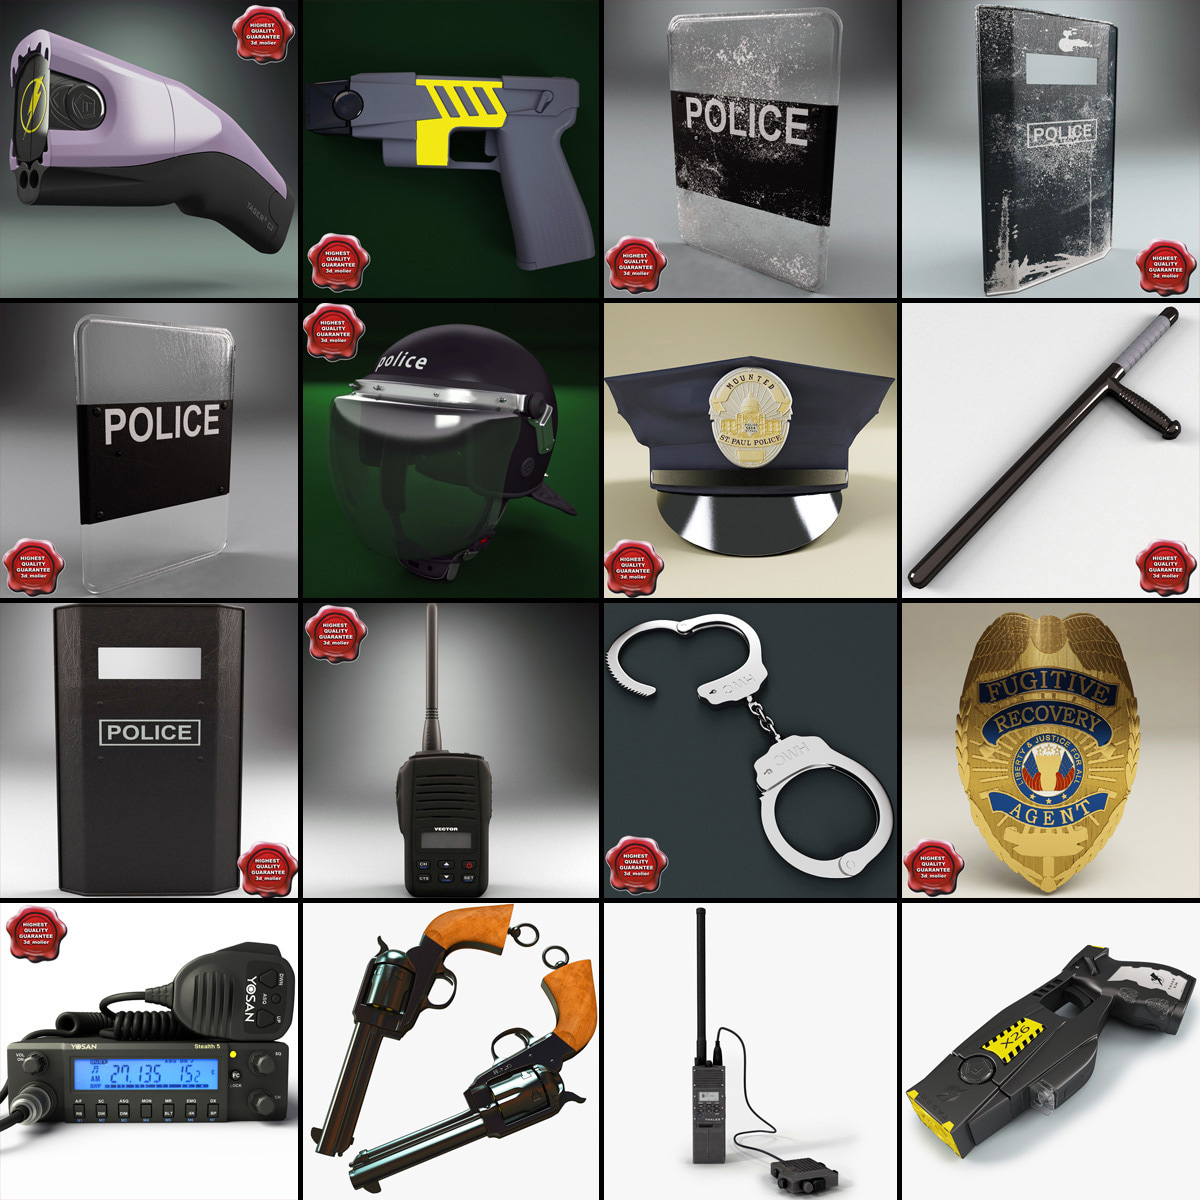 Police_Equipment_Collection_V4_000.jpg